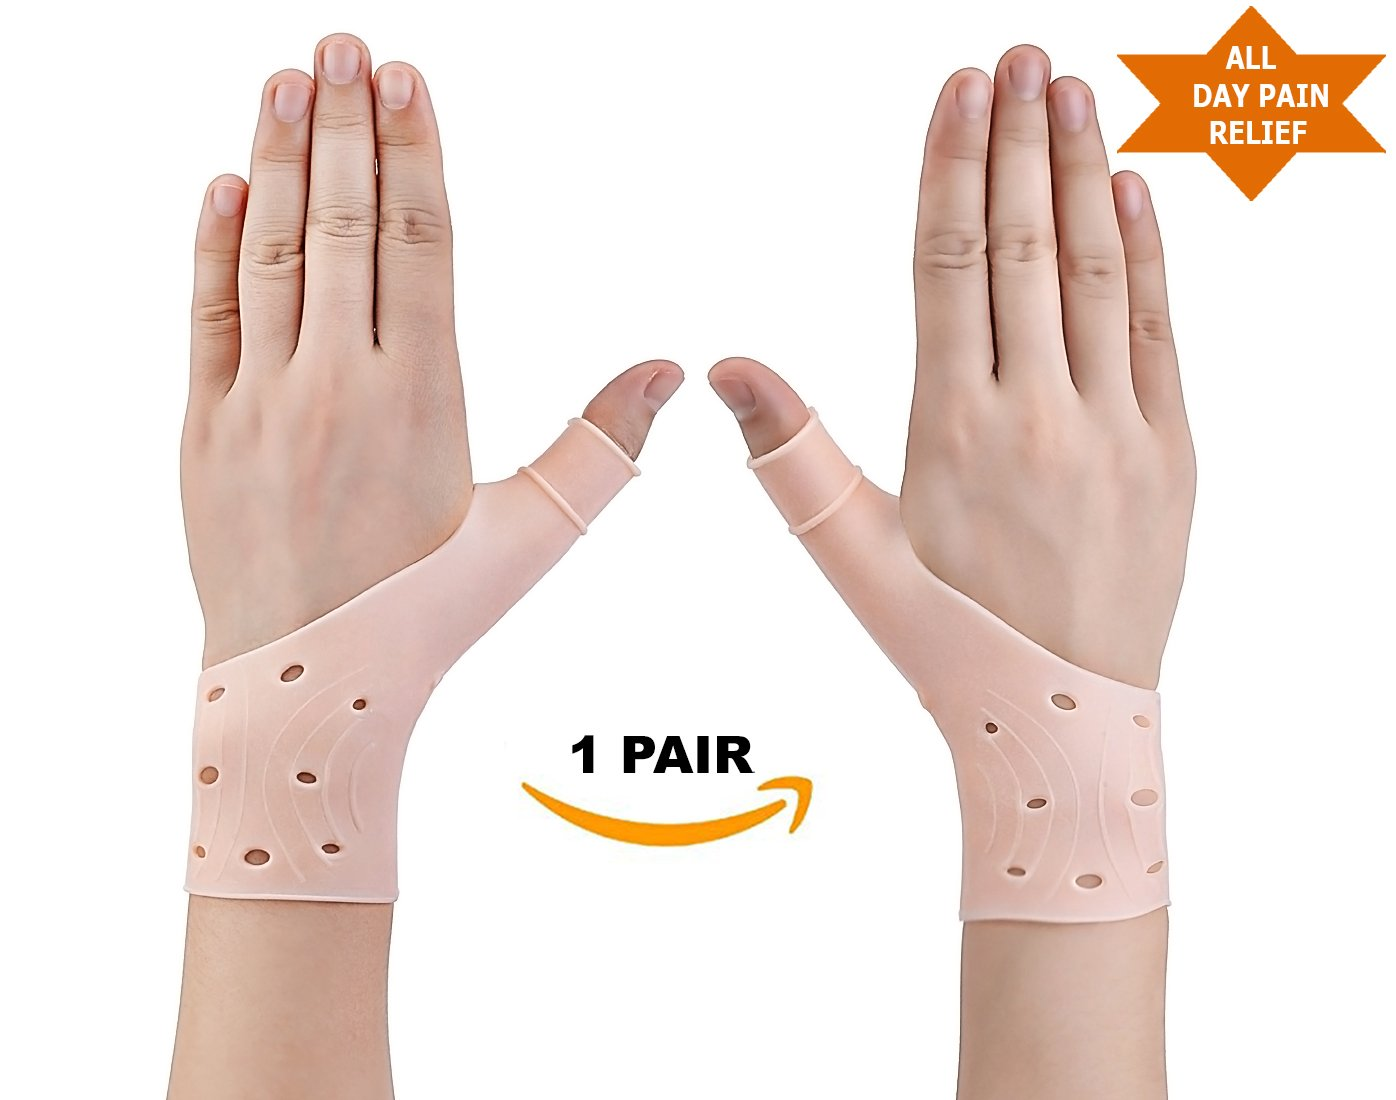 Zigora Gel Wrist Thumb Brace Support - Wrist & Thumb Stabilizer Gloves Braces, Fast Relief from Carpal Tunnel, Rheumatism, Tenosynovitis, Tendonitis & Typing Pain, (1 Pair) Breathable and Lightweight by Zigora